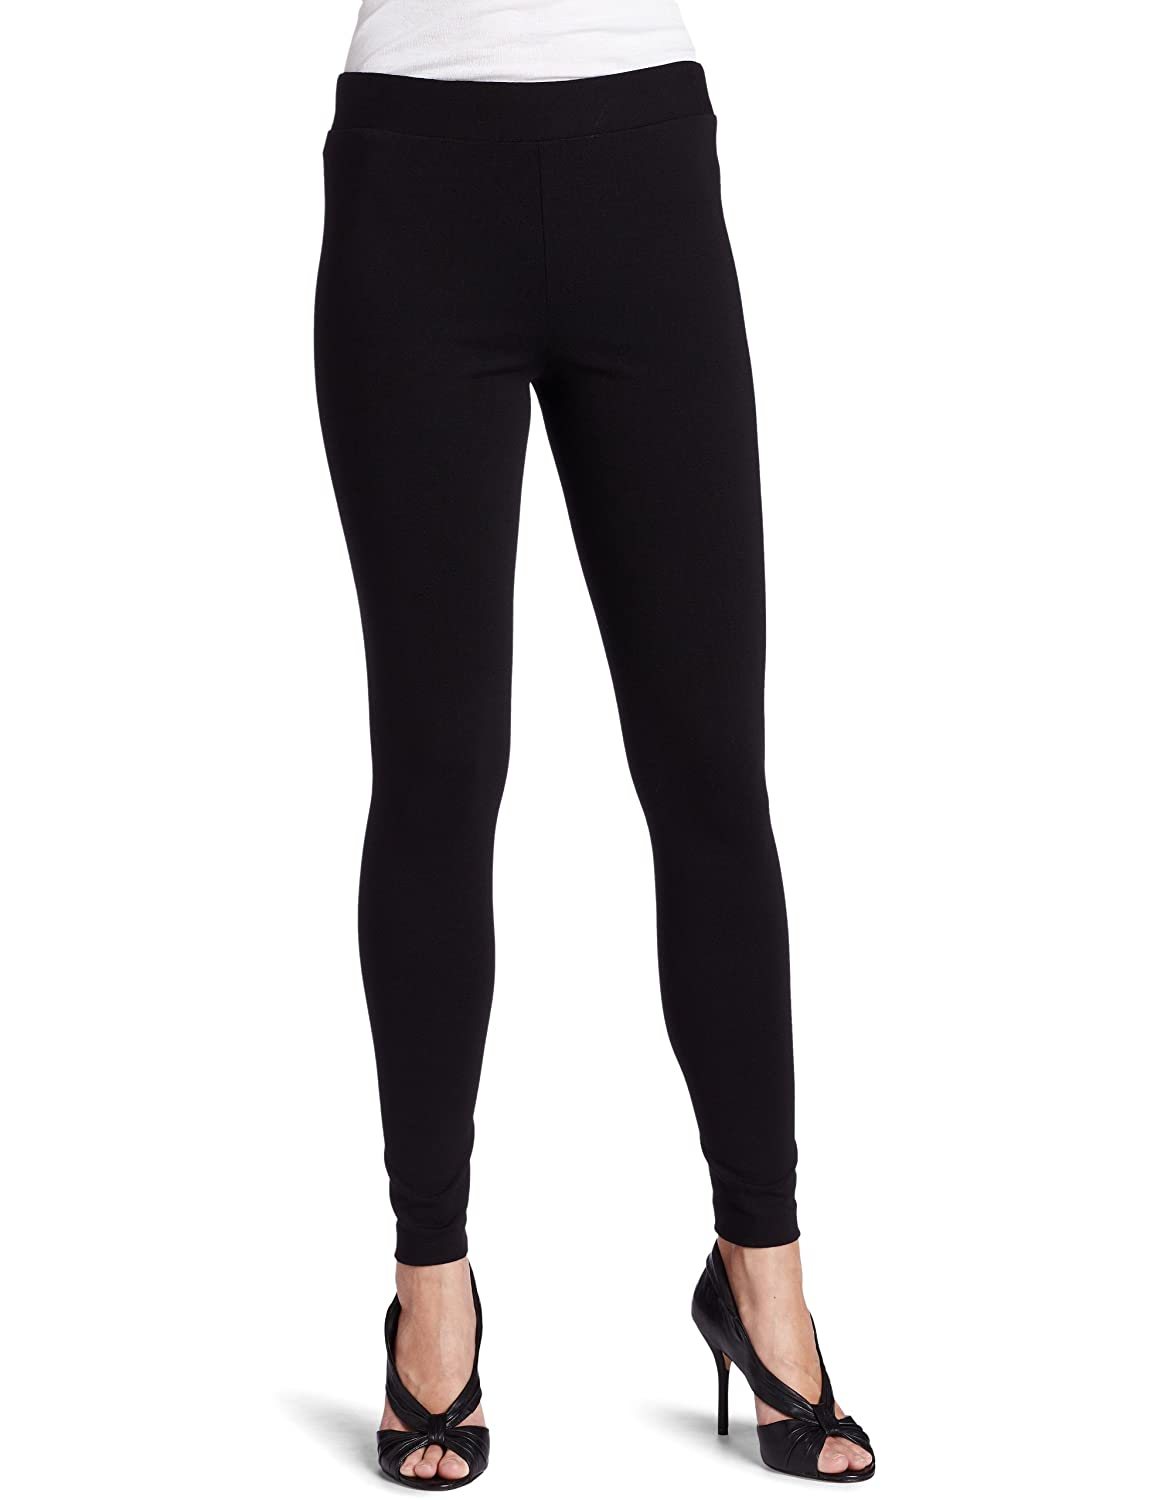 9c402c1c46 Vince Camuto Women's Stretch Legging Pant at Amazon Women's Clothing store: